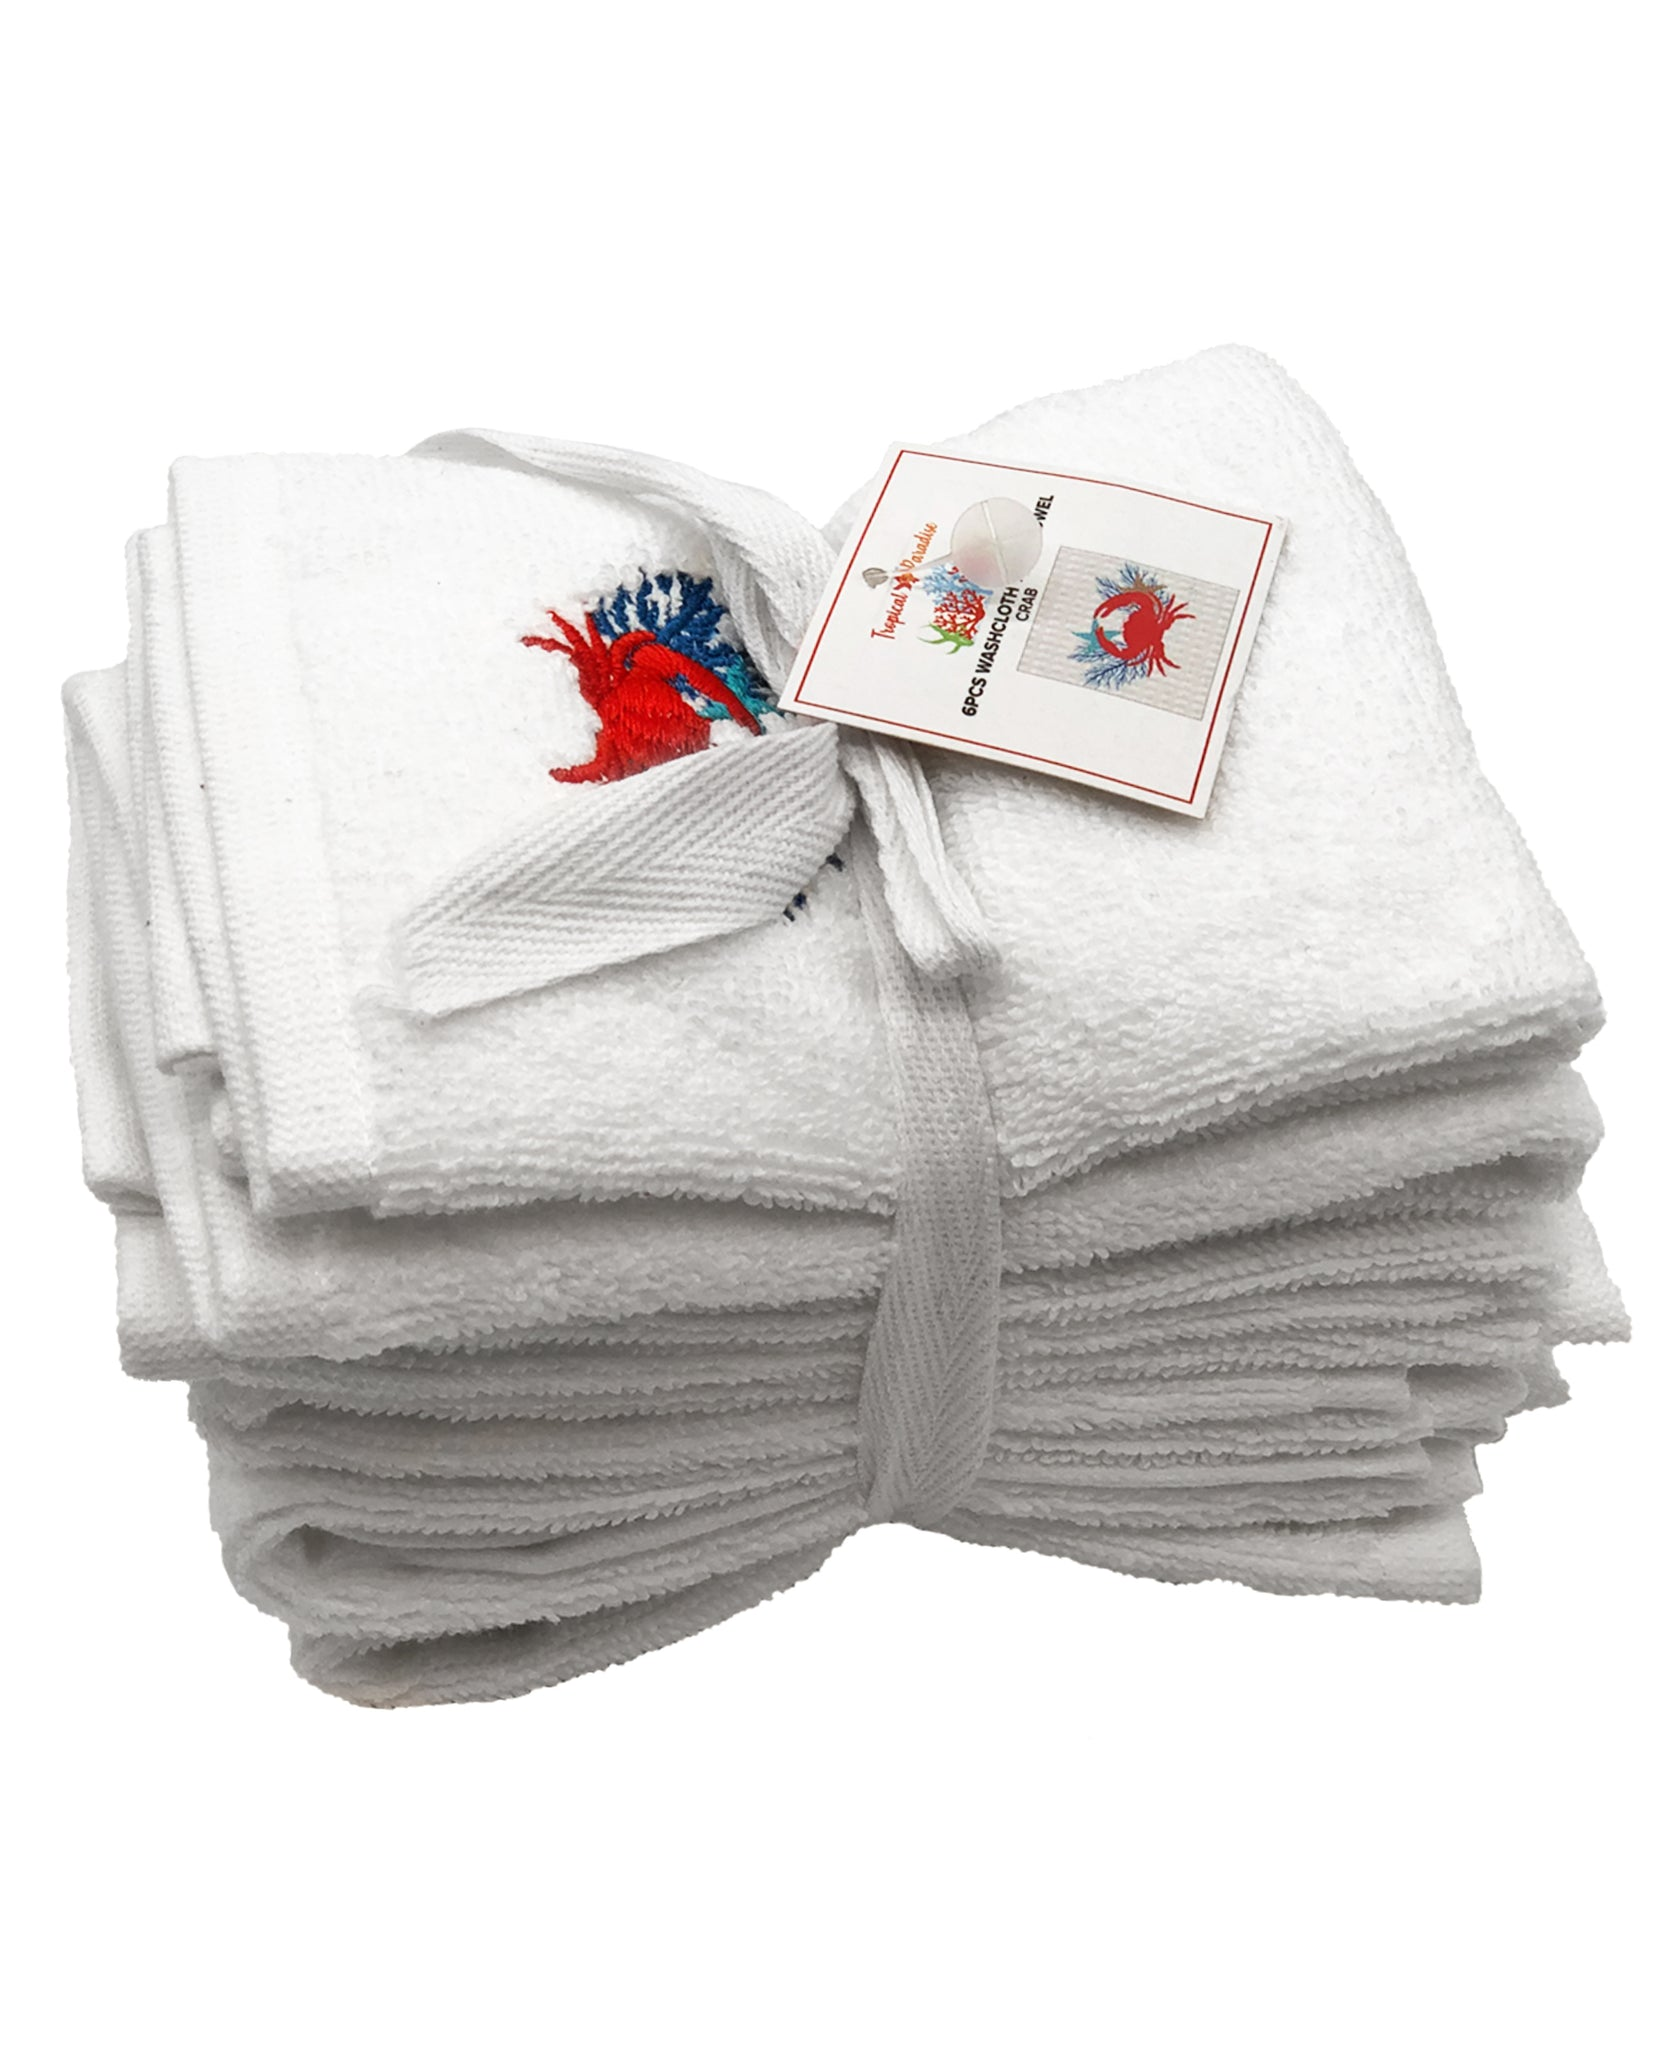 6-pc Coral Crab Embroidery Terry Towel, 12''x 12'' Mod Lifestyles